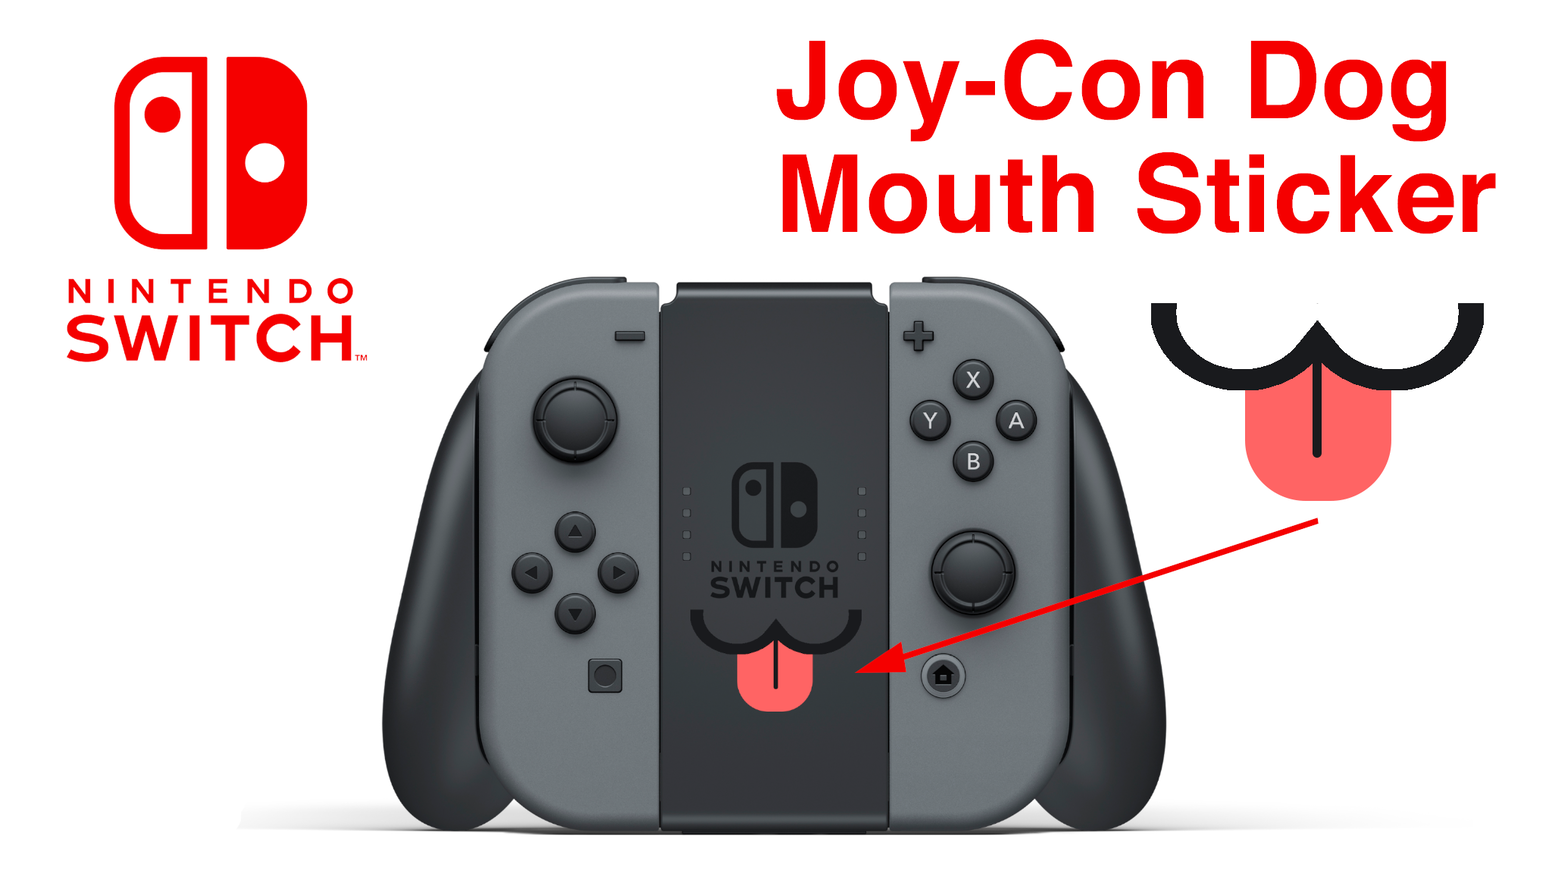 Nintendo Switch Dog Tongue Stickers for Joy-Con by Nintendeal ...